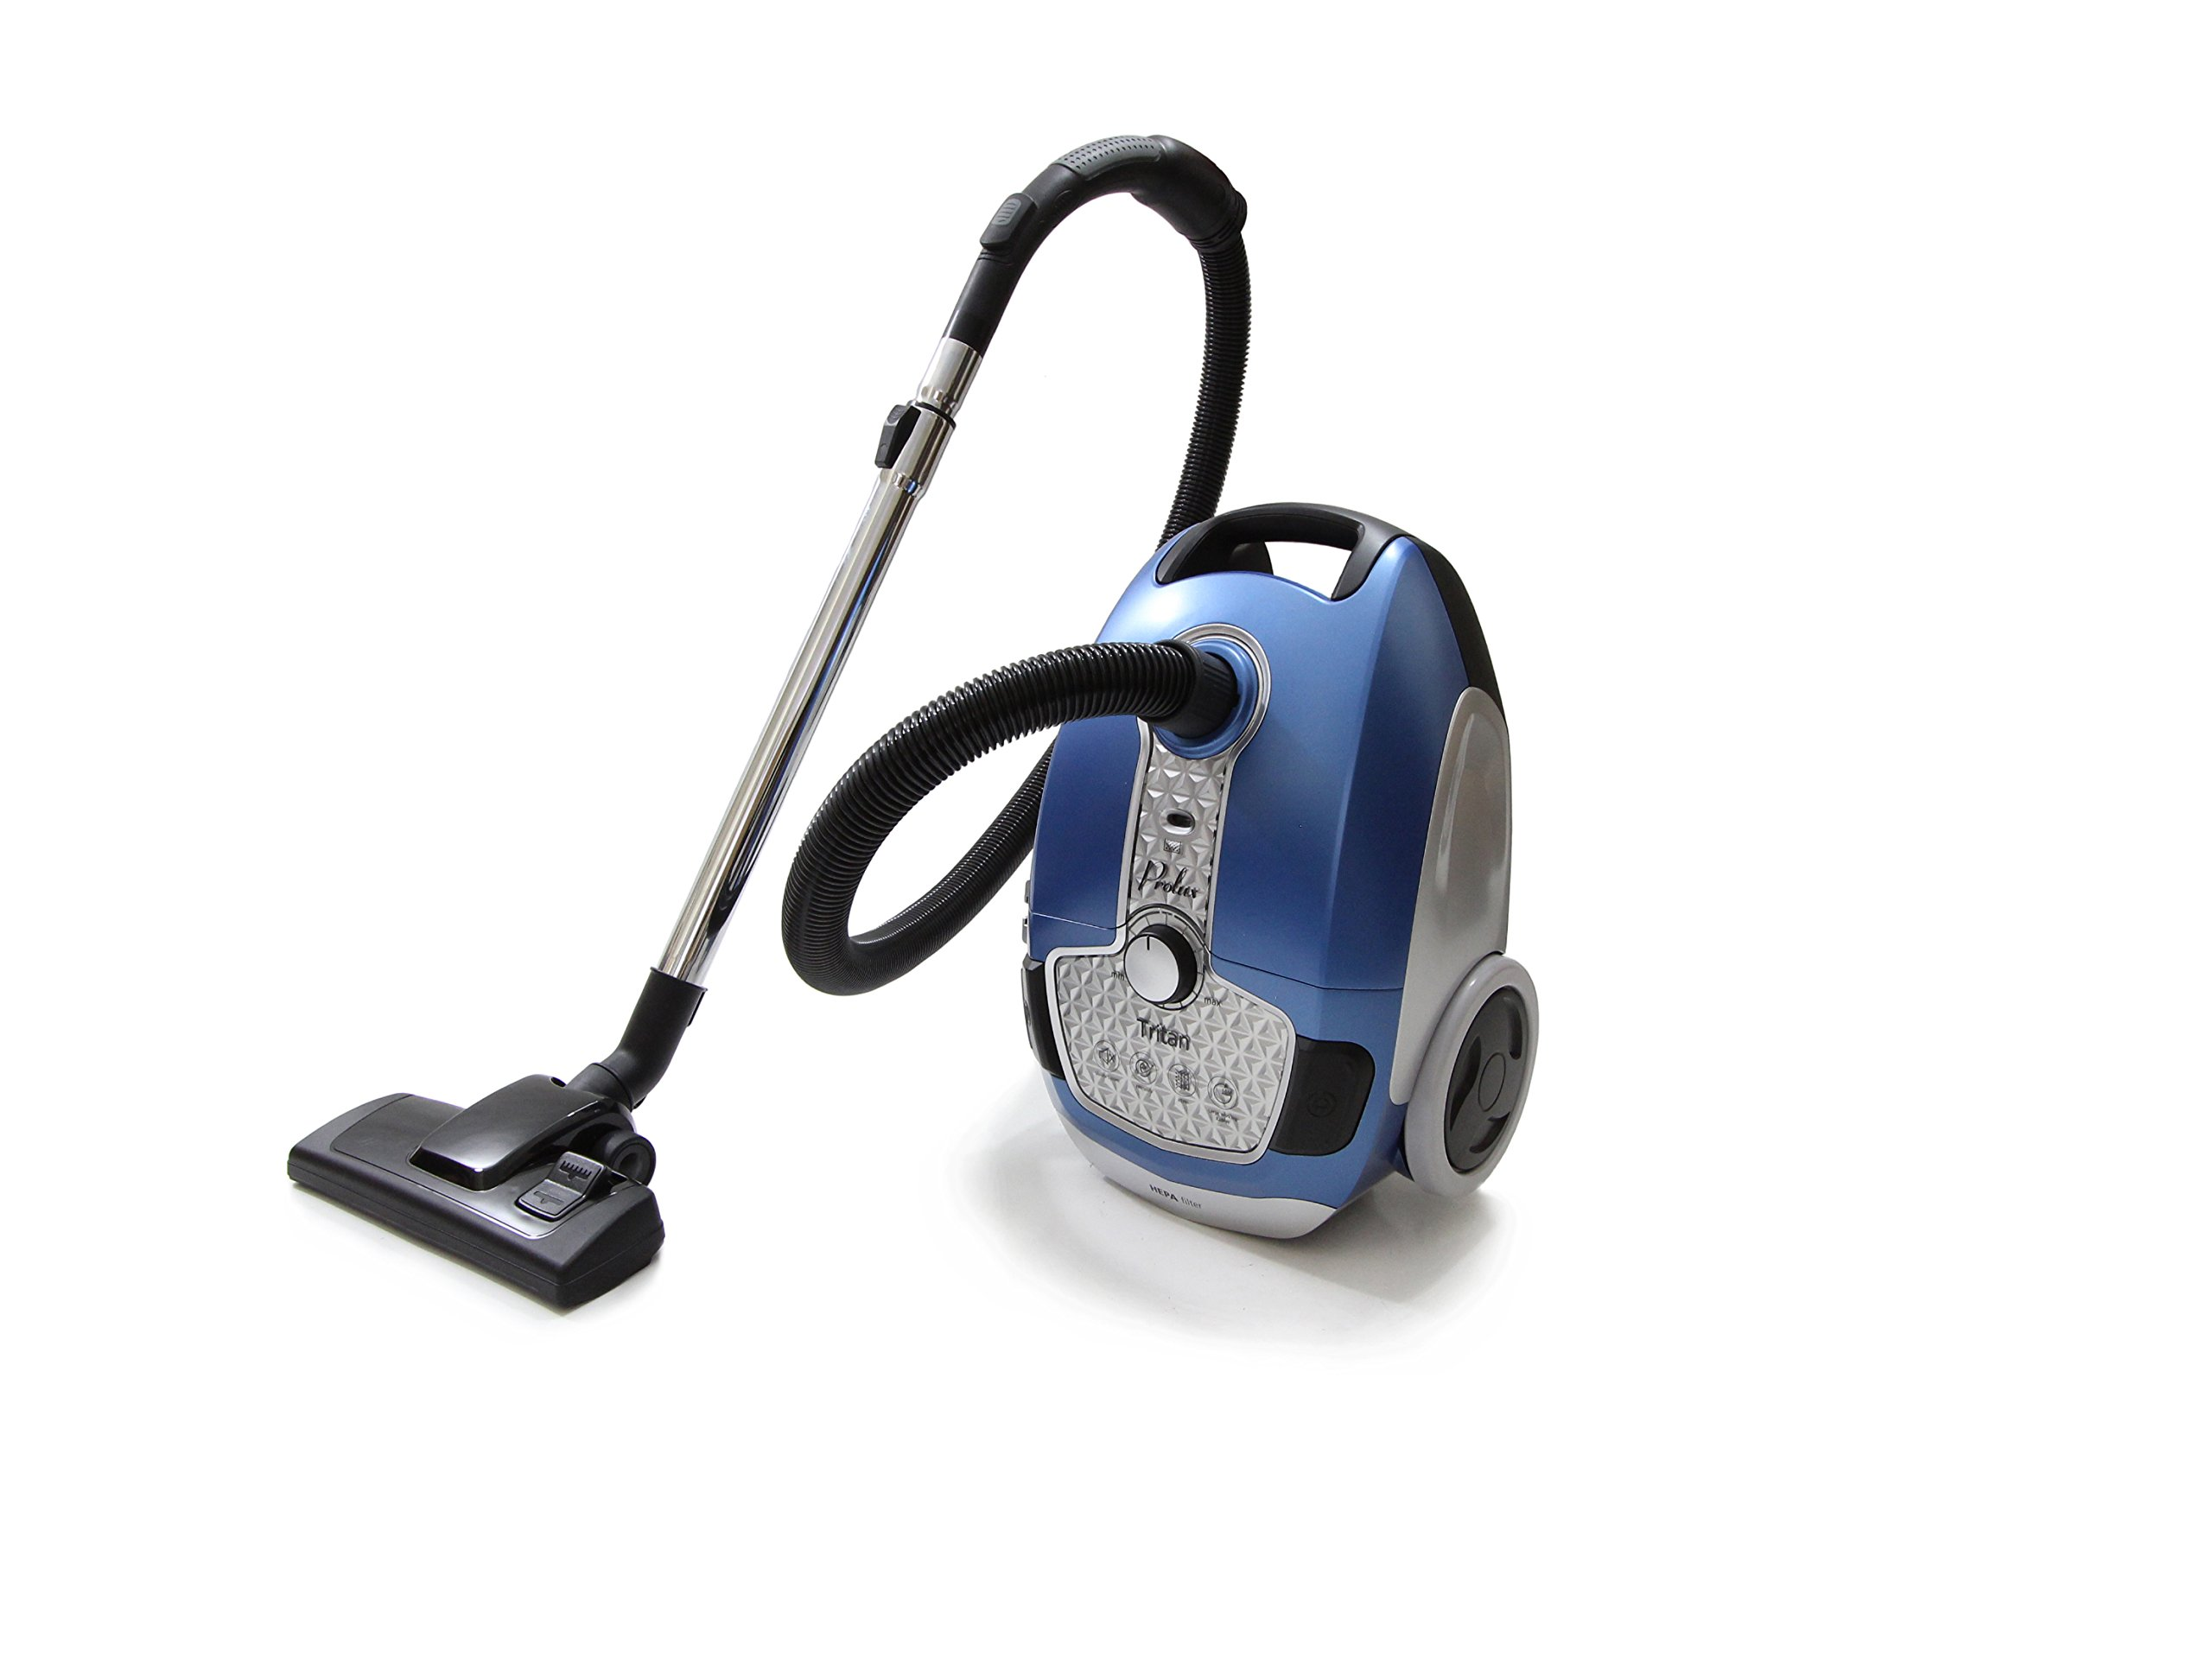 Prolux Tritan Canister Vacuum HEPA Sealed Hard Floor Vacuum with Powerful 12 Amp Motor product image